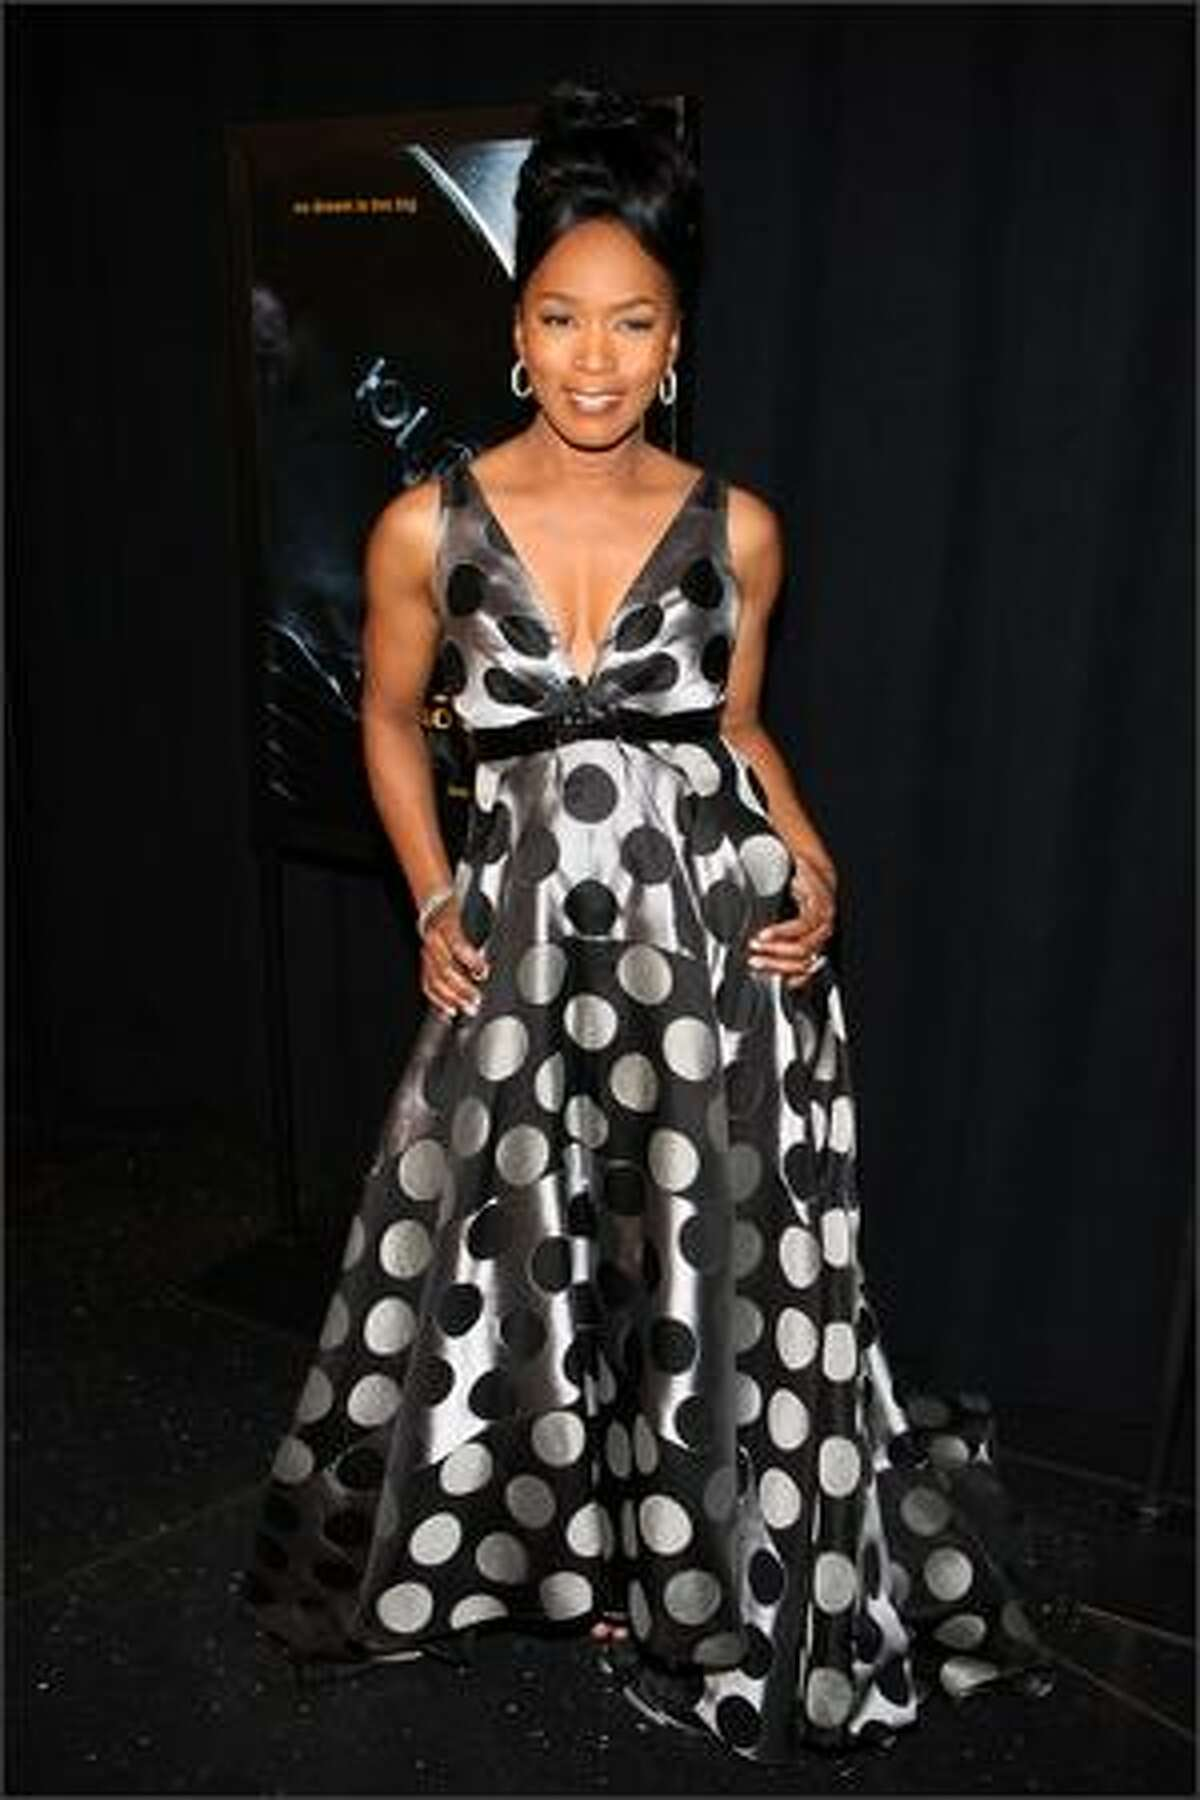 NEW YORK - JANUARY 07: Actress Angela Bassett attends the premiere of